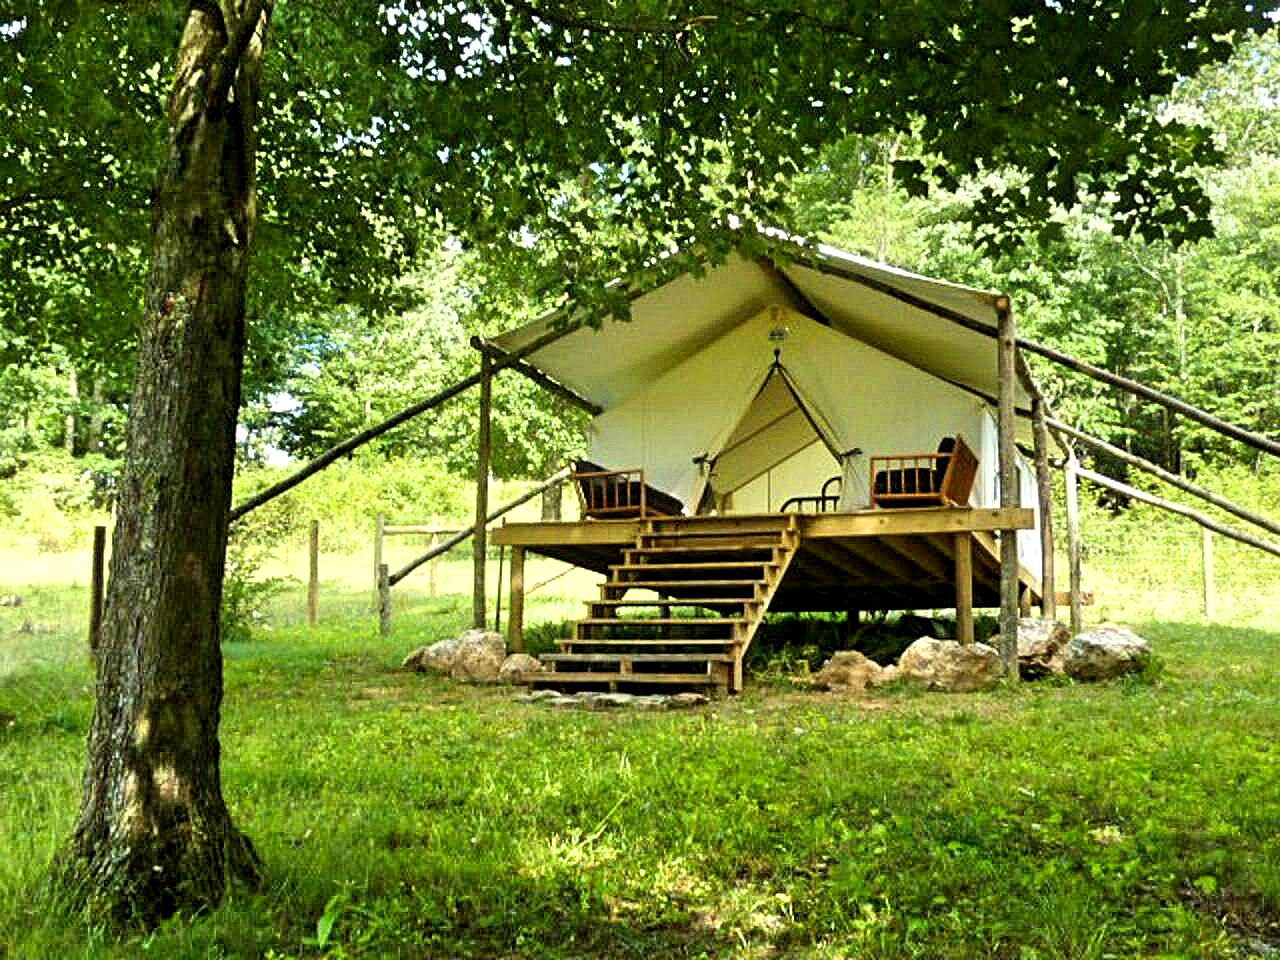 Safari Tents (Dugspur, Virginia, United States)